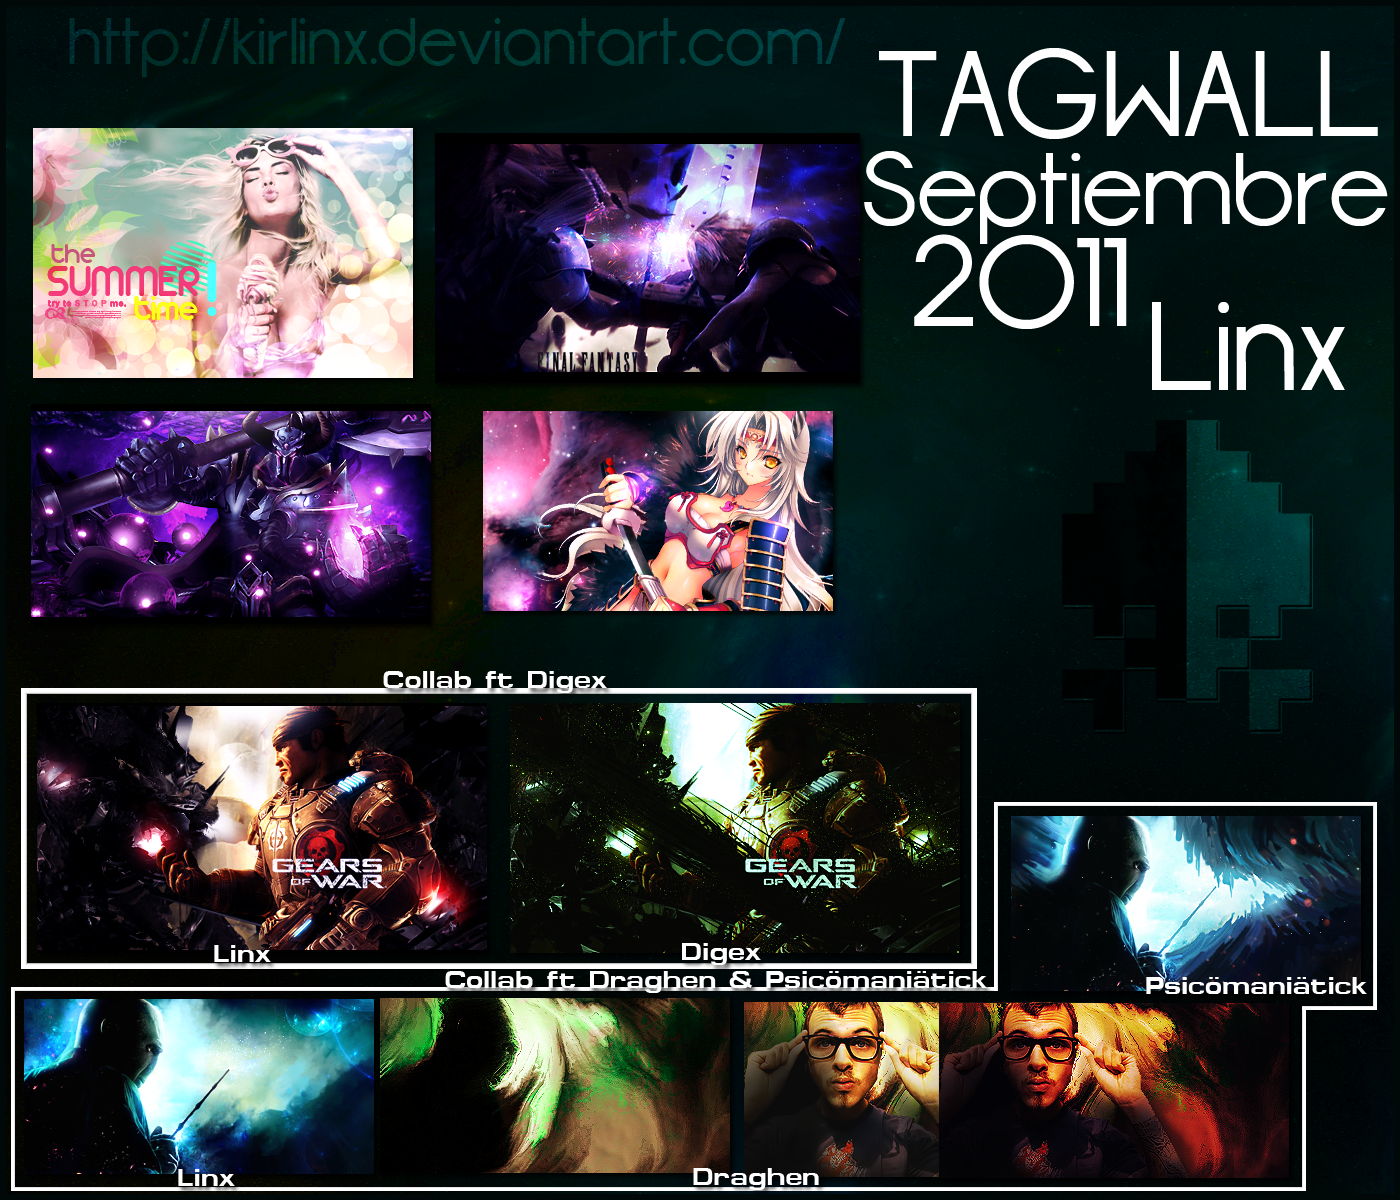 Tag Wall Septiembre Tag_wall_septiembre_2011_linx_by_kirlinx-d4blimn